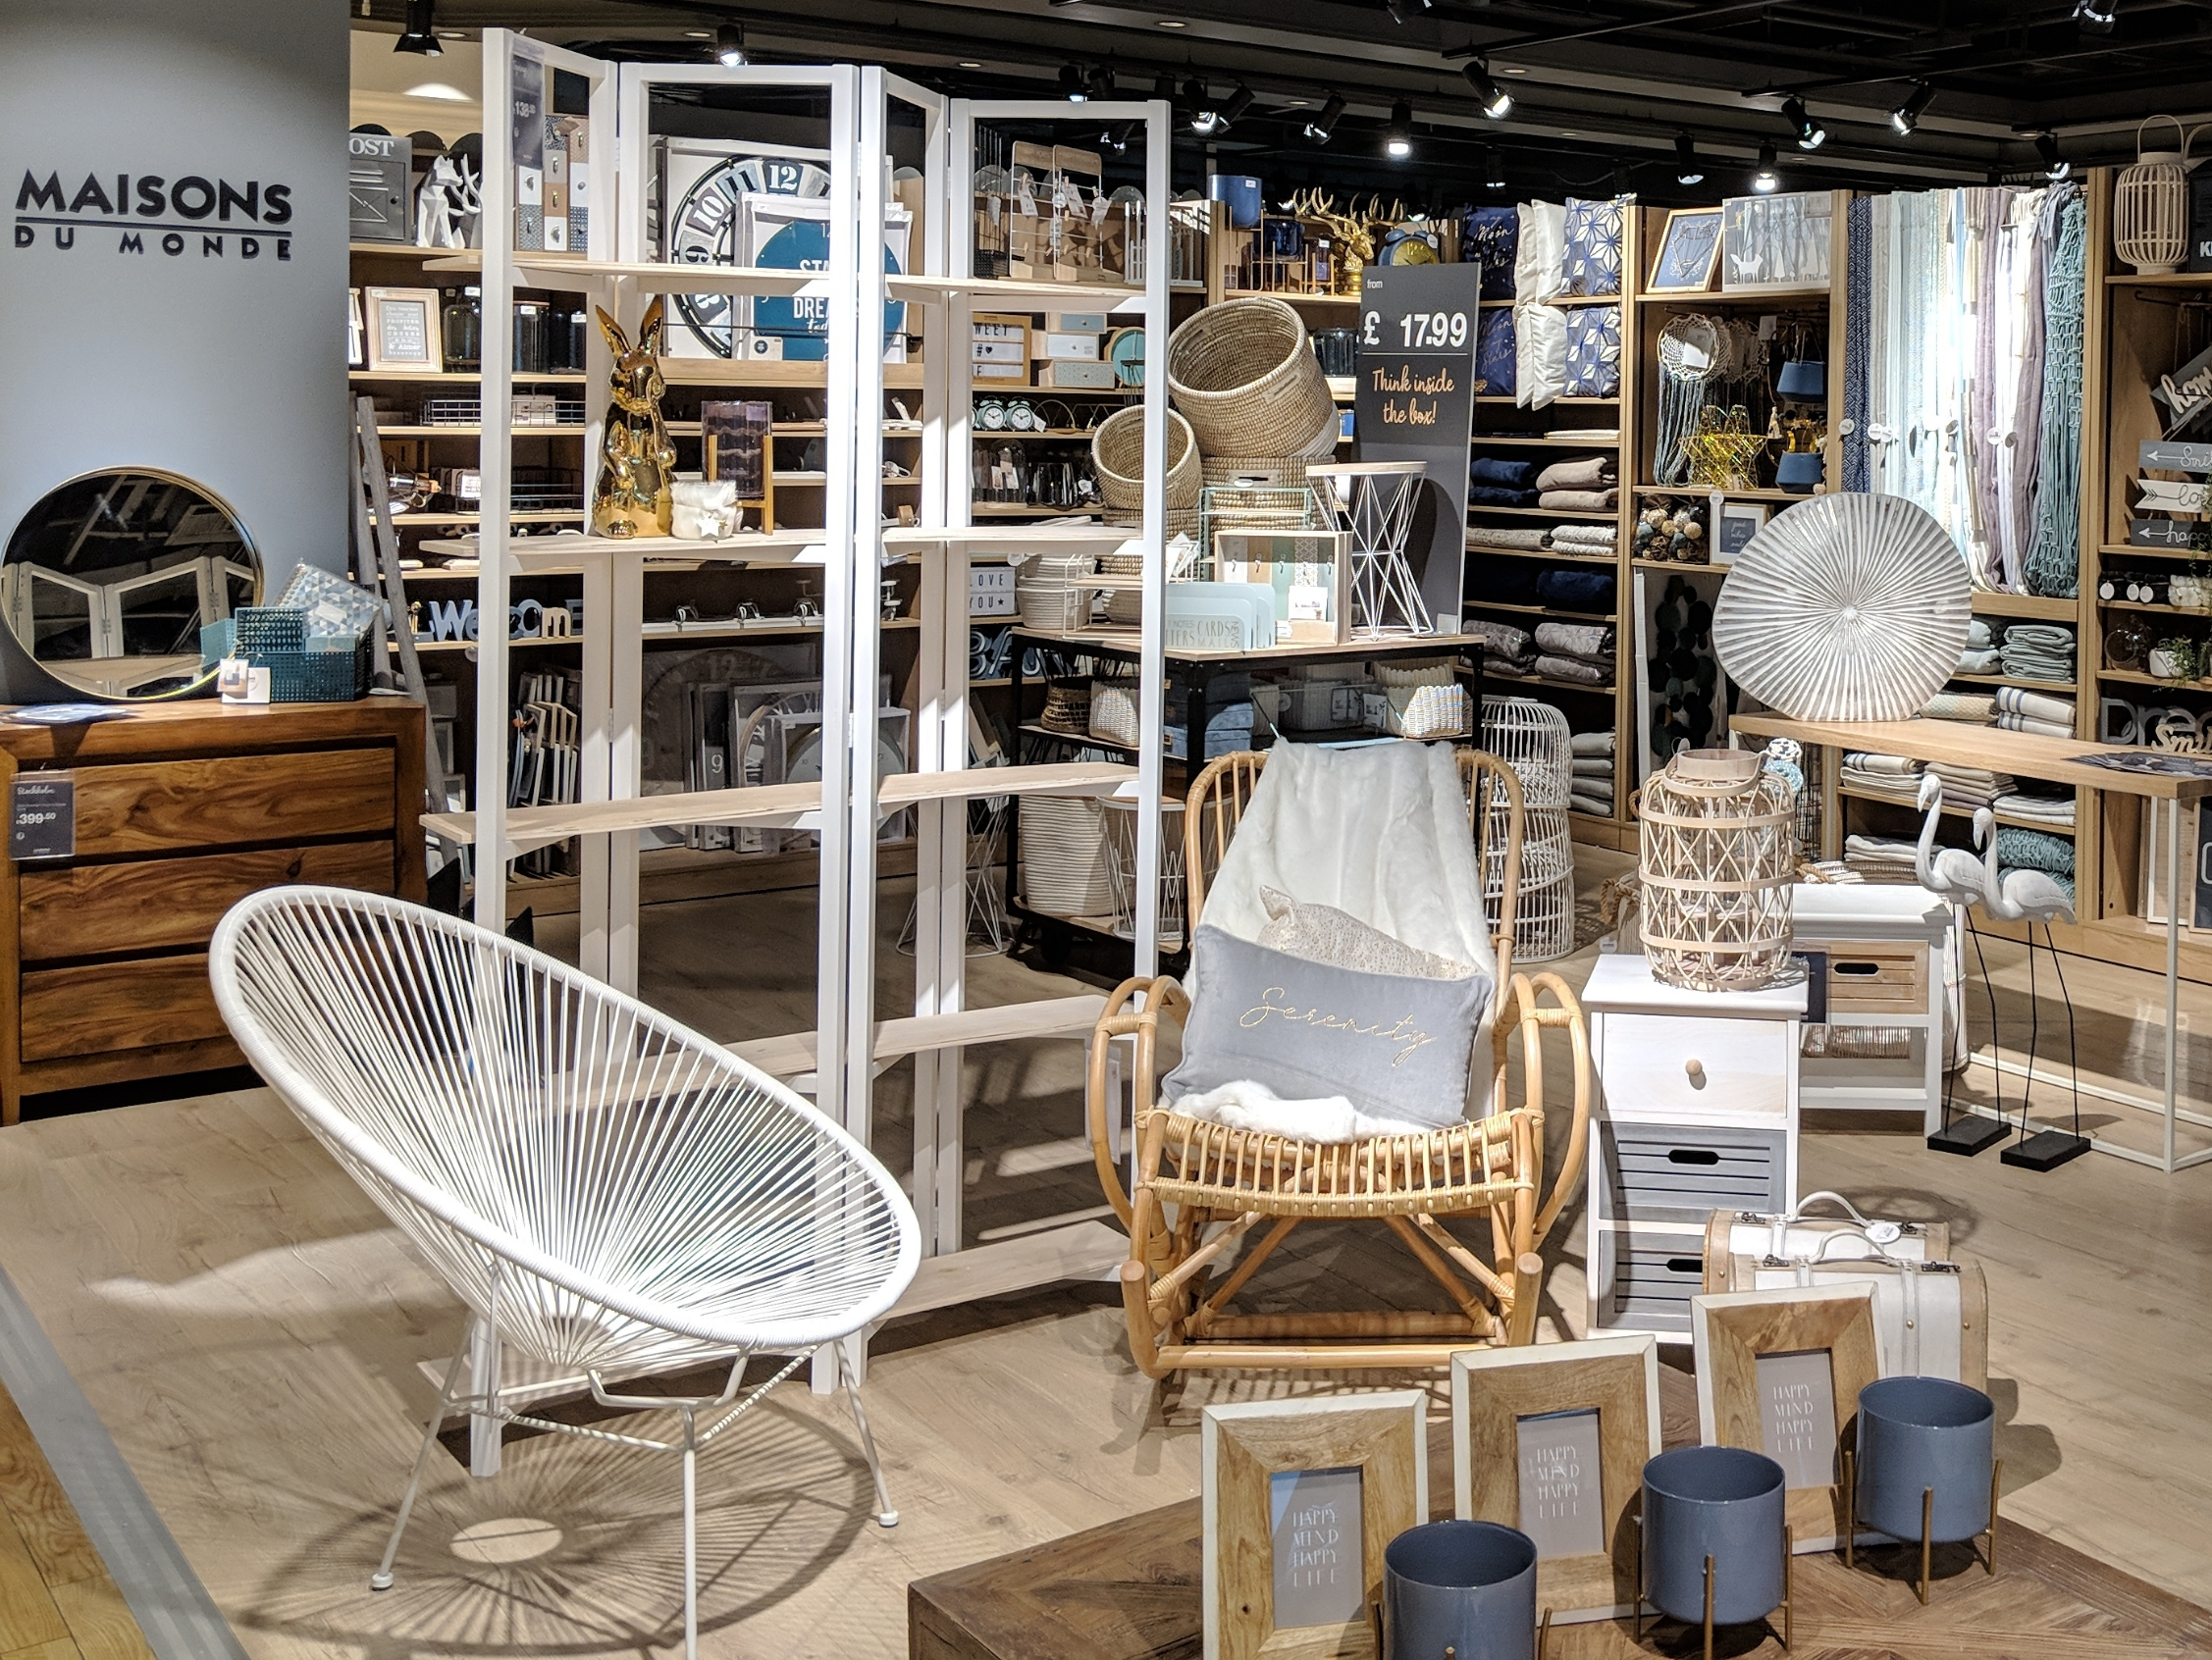 Maisons Du Monde Near Me Maisons Du Monde Opens A New Shop In Shop In Leicester At